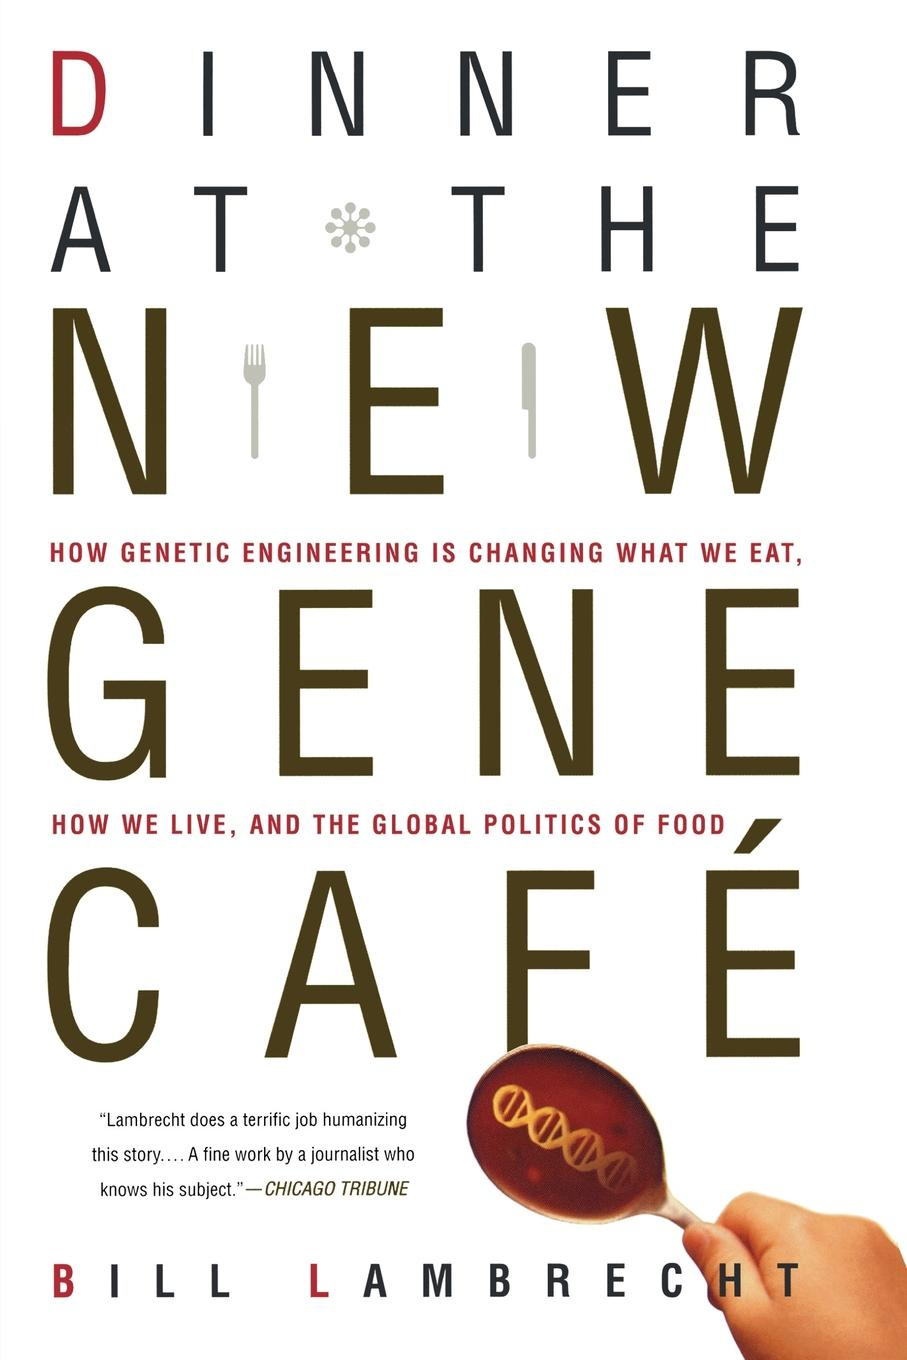 Bill Lambrecht Dinner at the New Gene Cafe. How Genetic Engineering Is Changing What We Eat, How We Live, and the Global Politics of Food hidden dangers in what we eat and drink